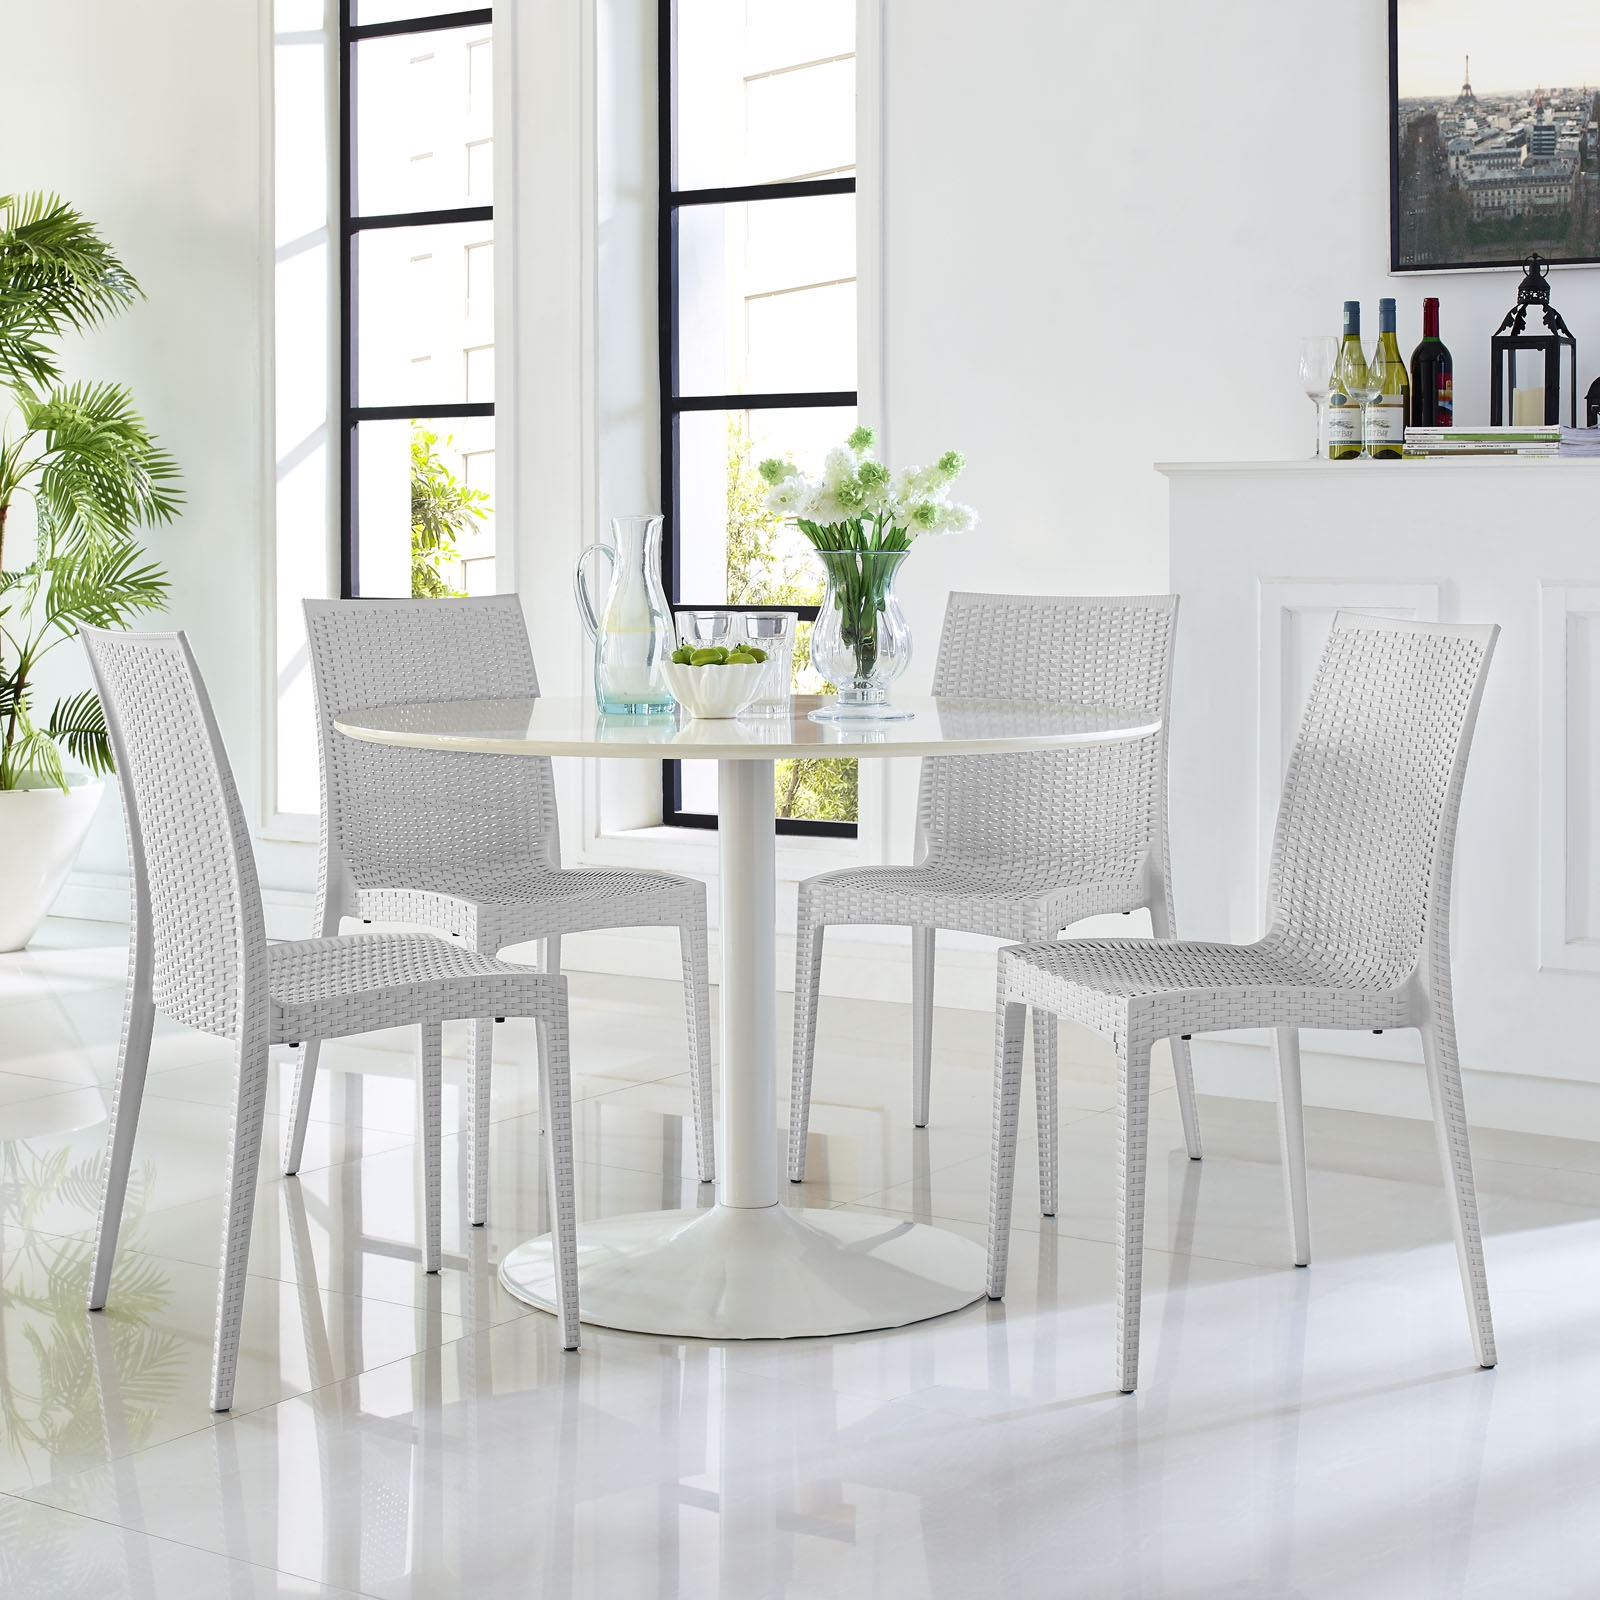 Intrepid Dining Side Chair in Gray